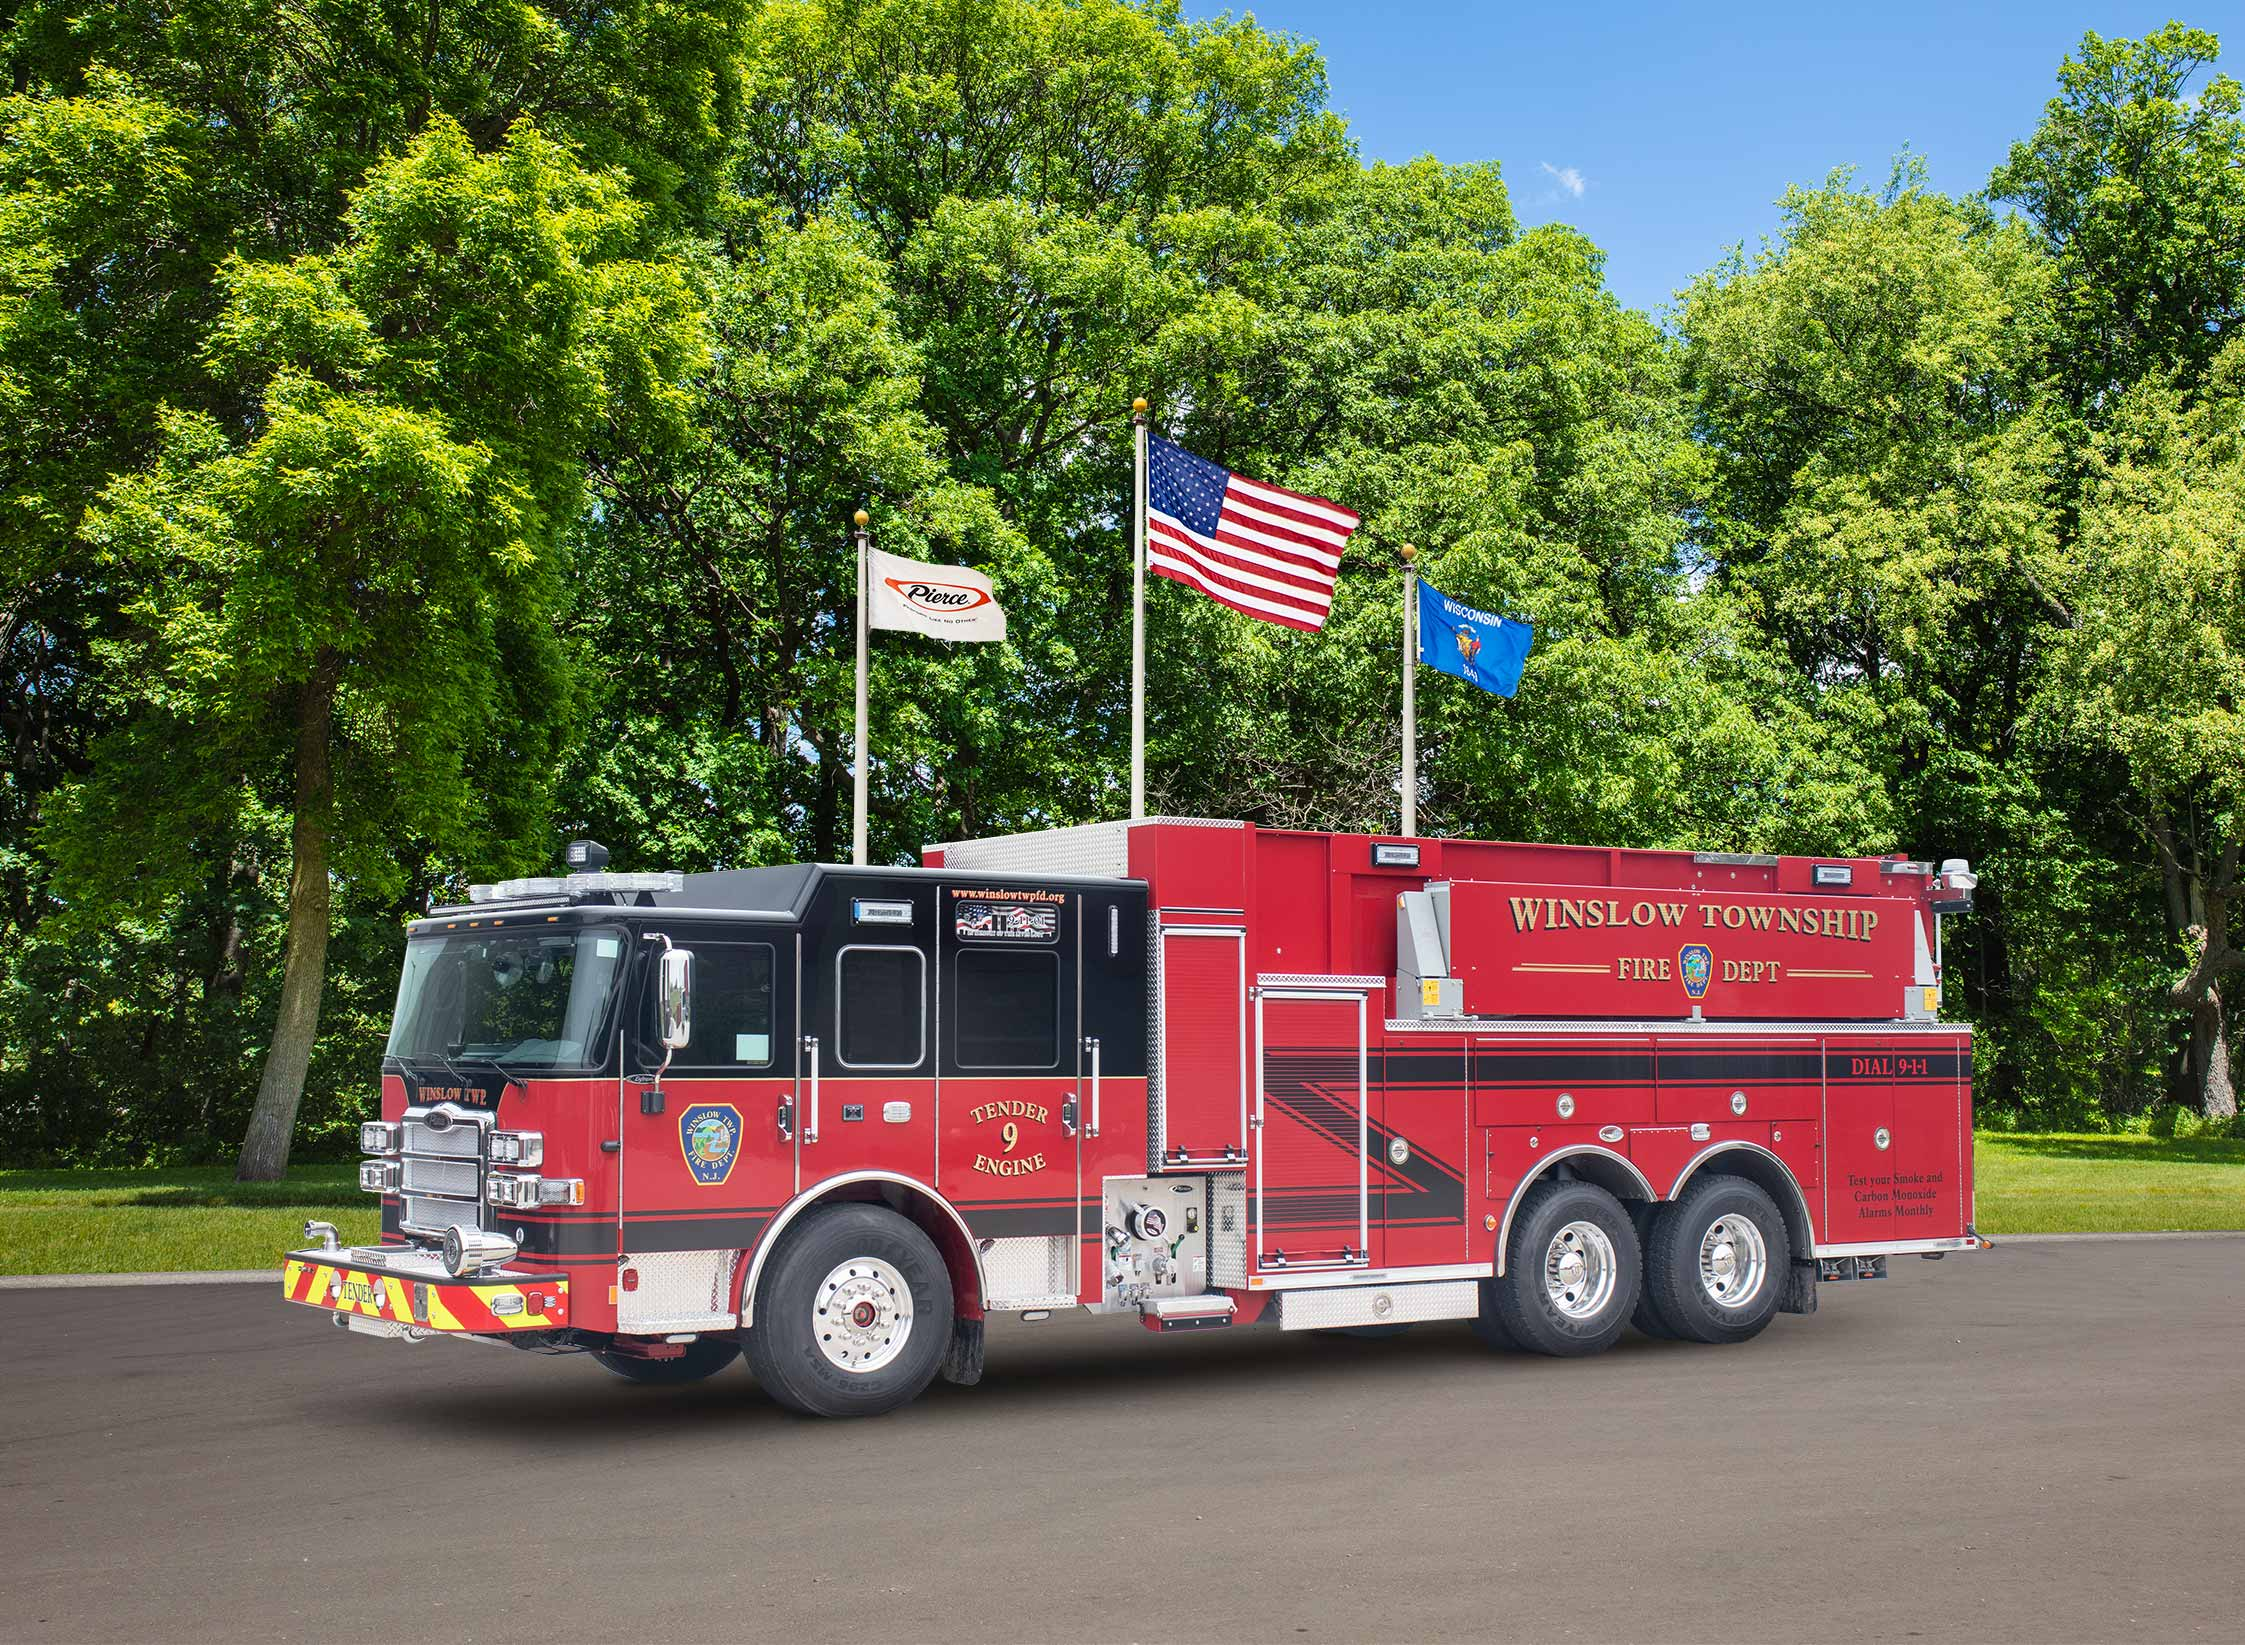 Winslow Township Fire District No.1 - Tanker